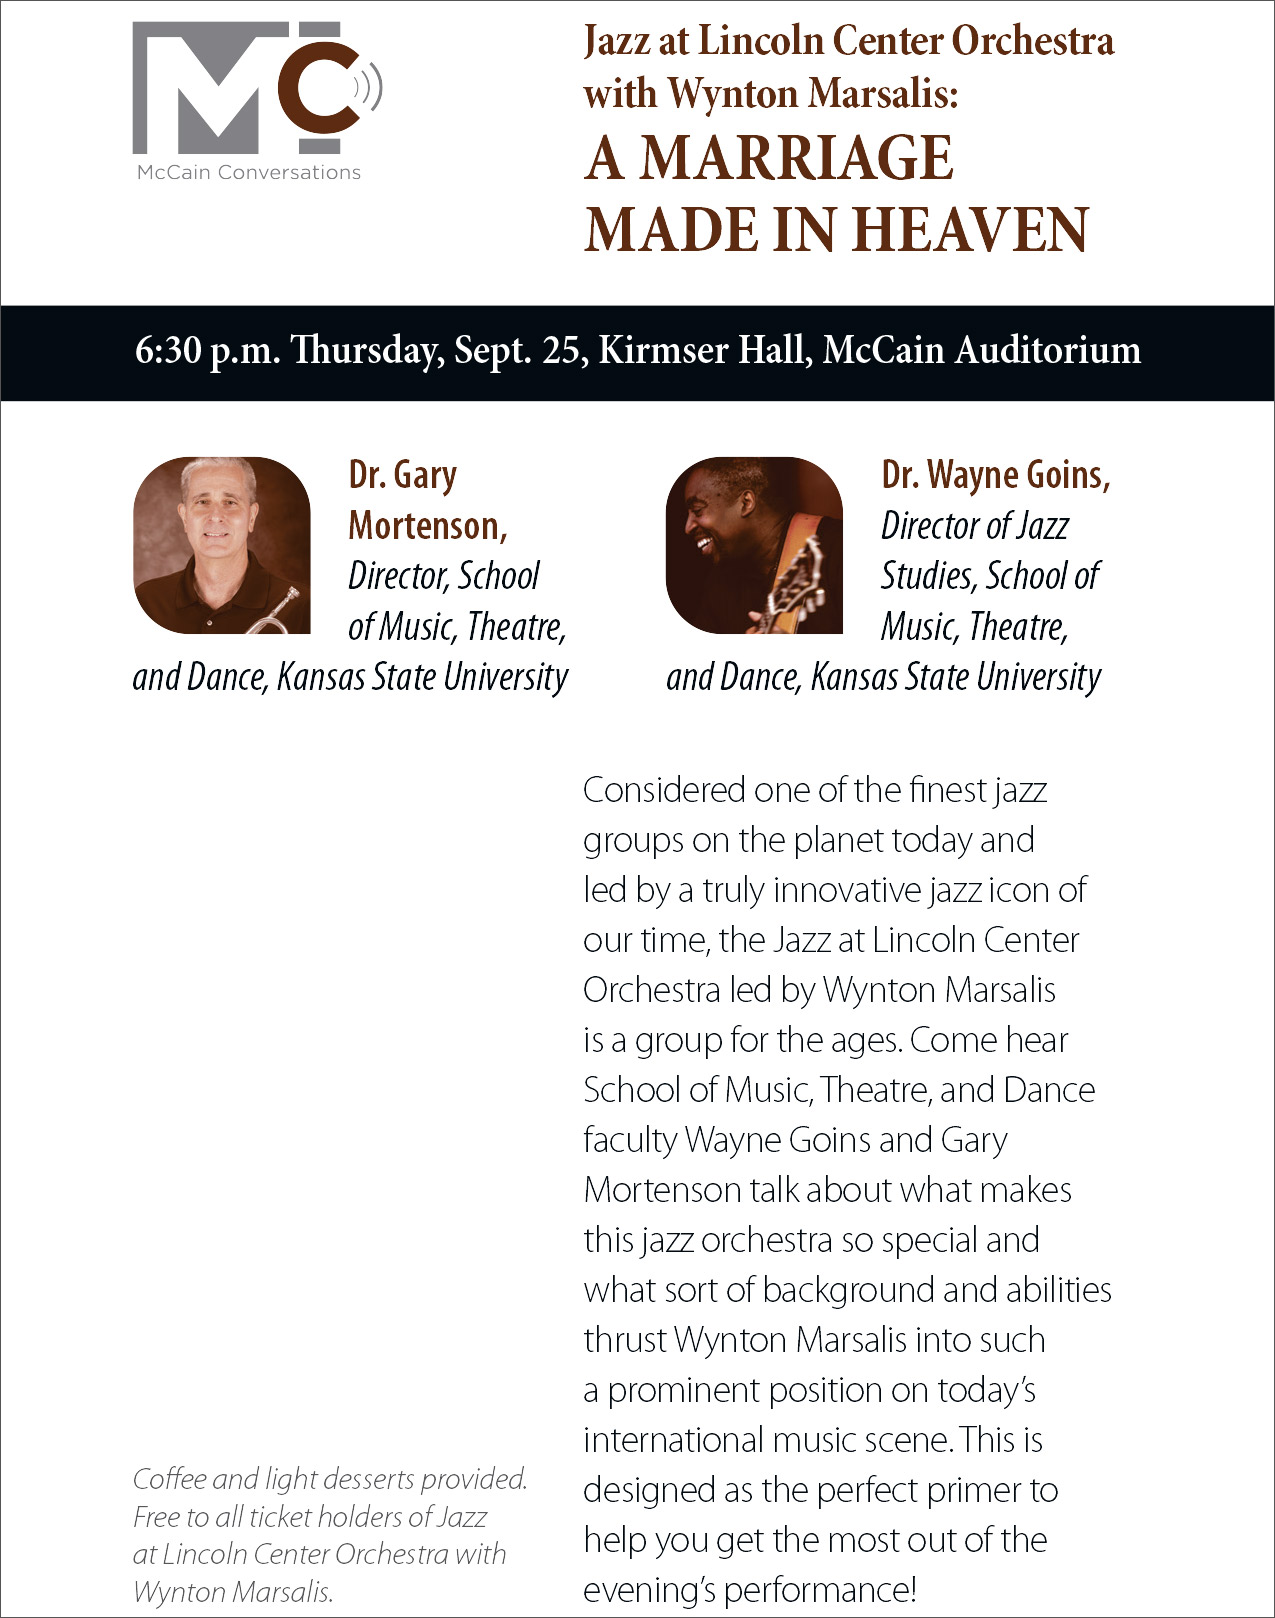 McCain conversations - Jazz at Lincoln Center Orchestra with Wynton Maraslis